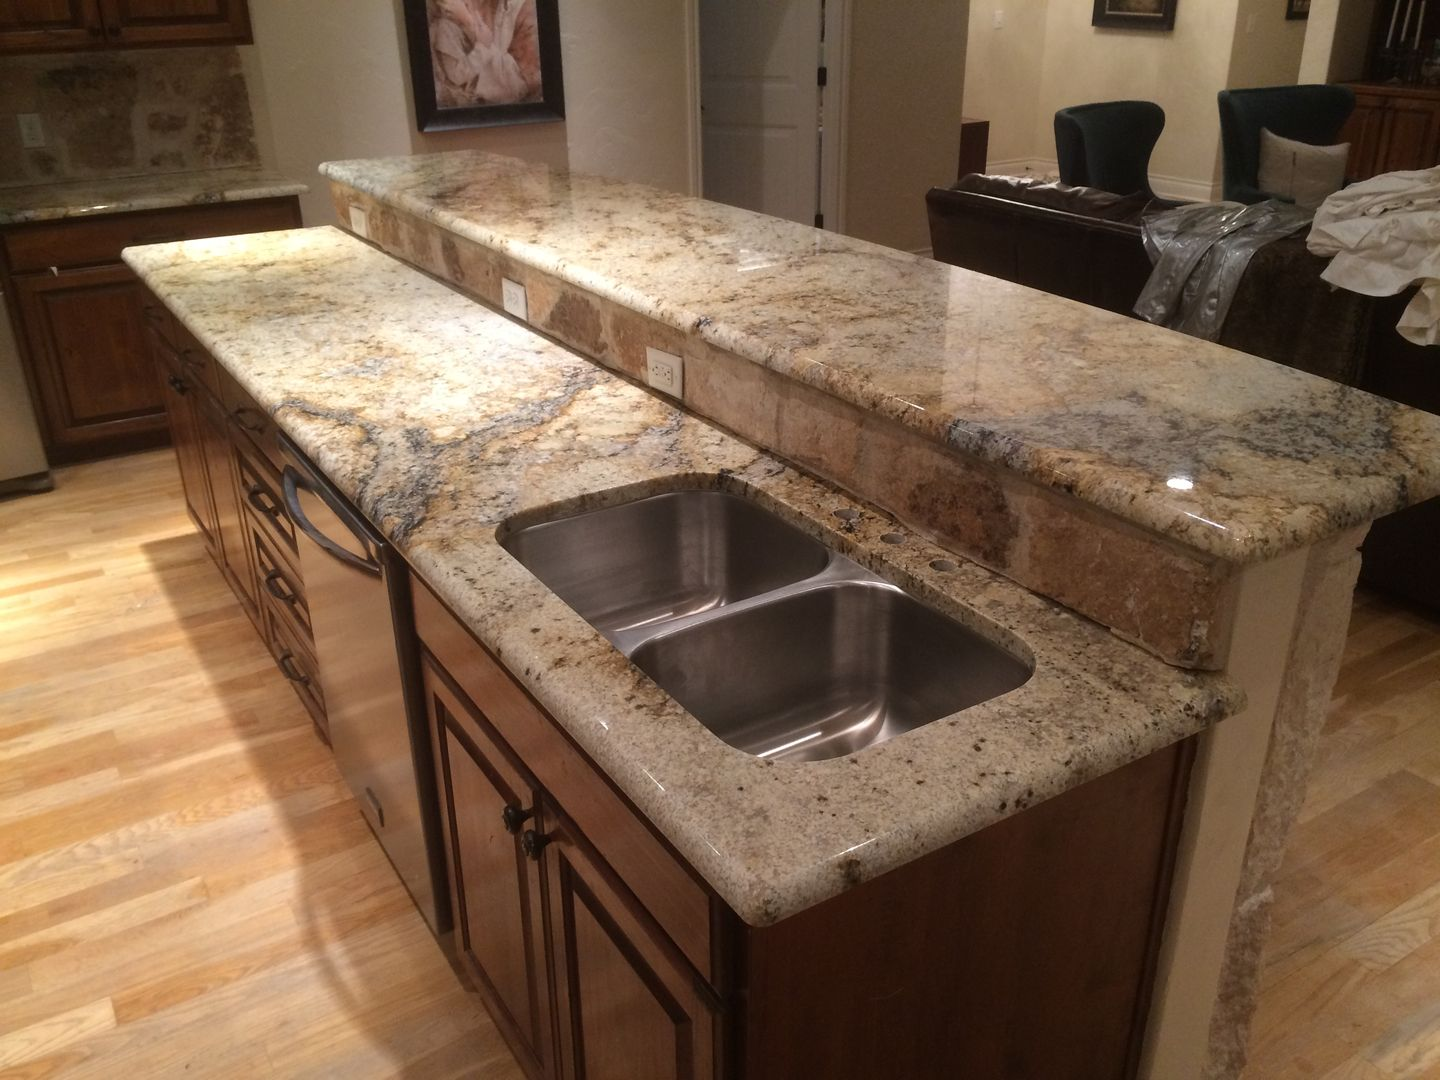 Sienna Beige Granite Kitchen Remodel Kitchen Granite Home Decor Dark Cabinets Rock